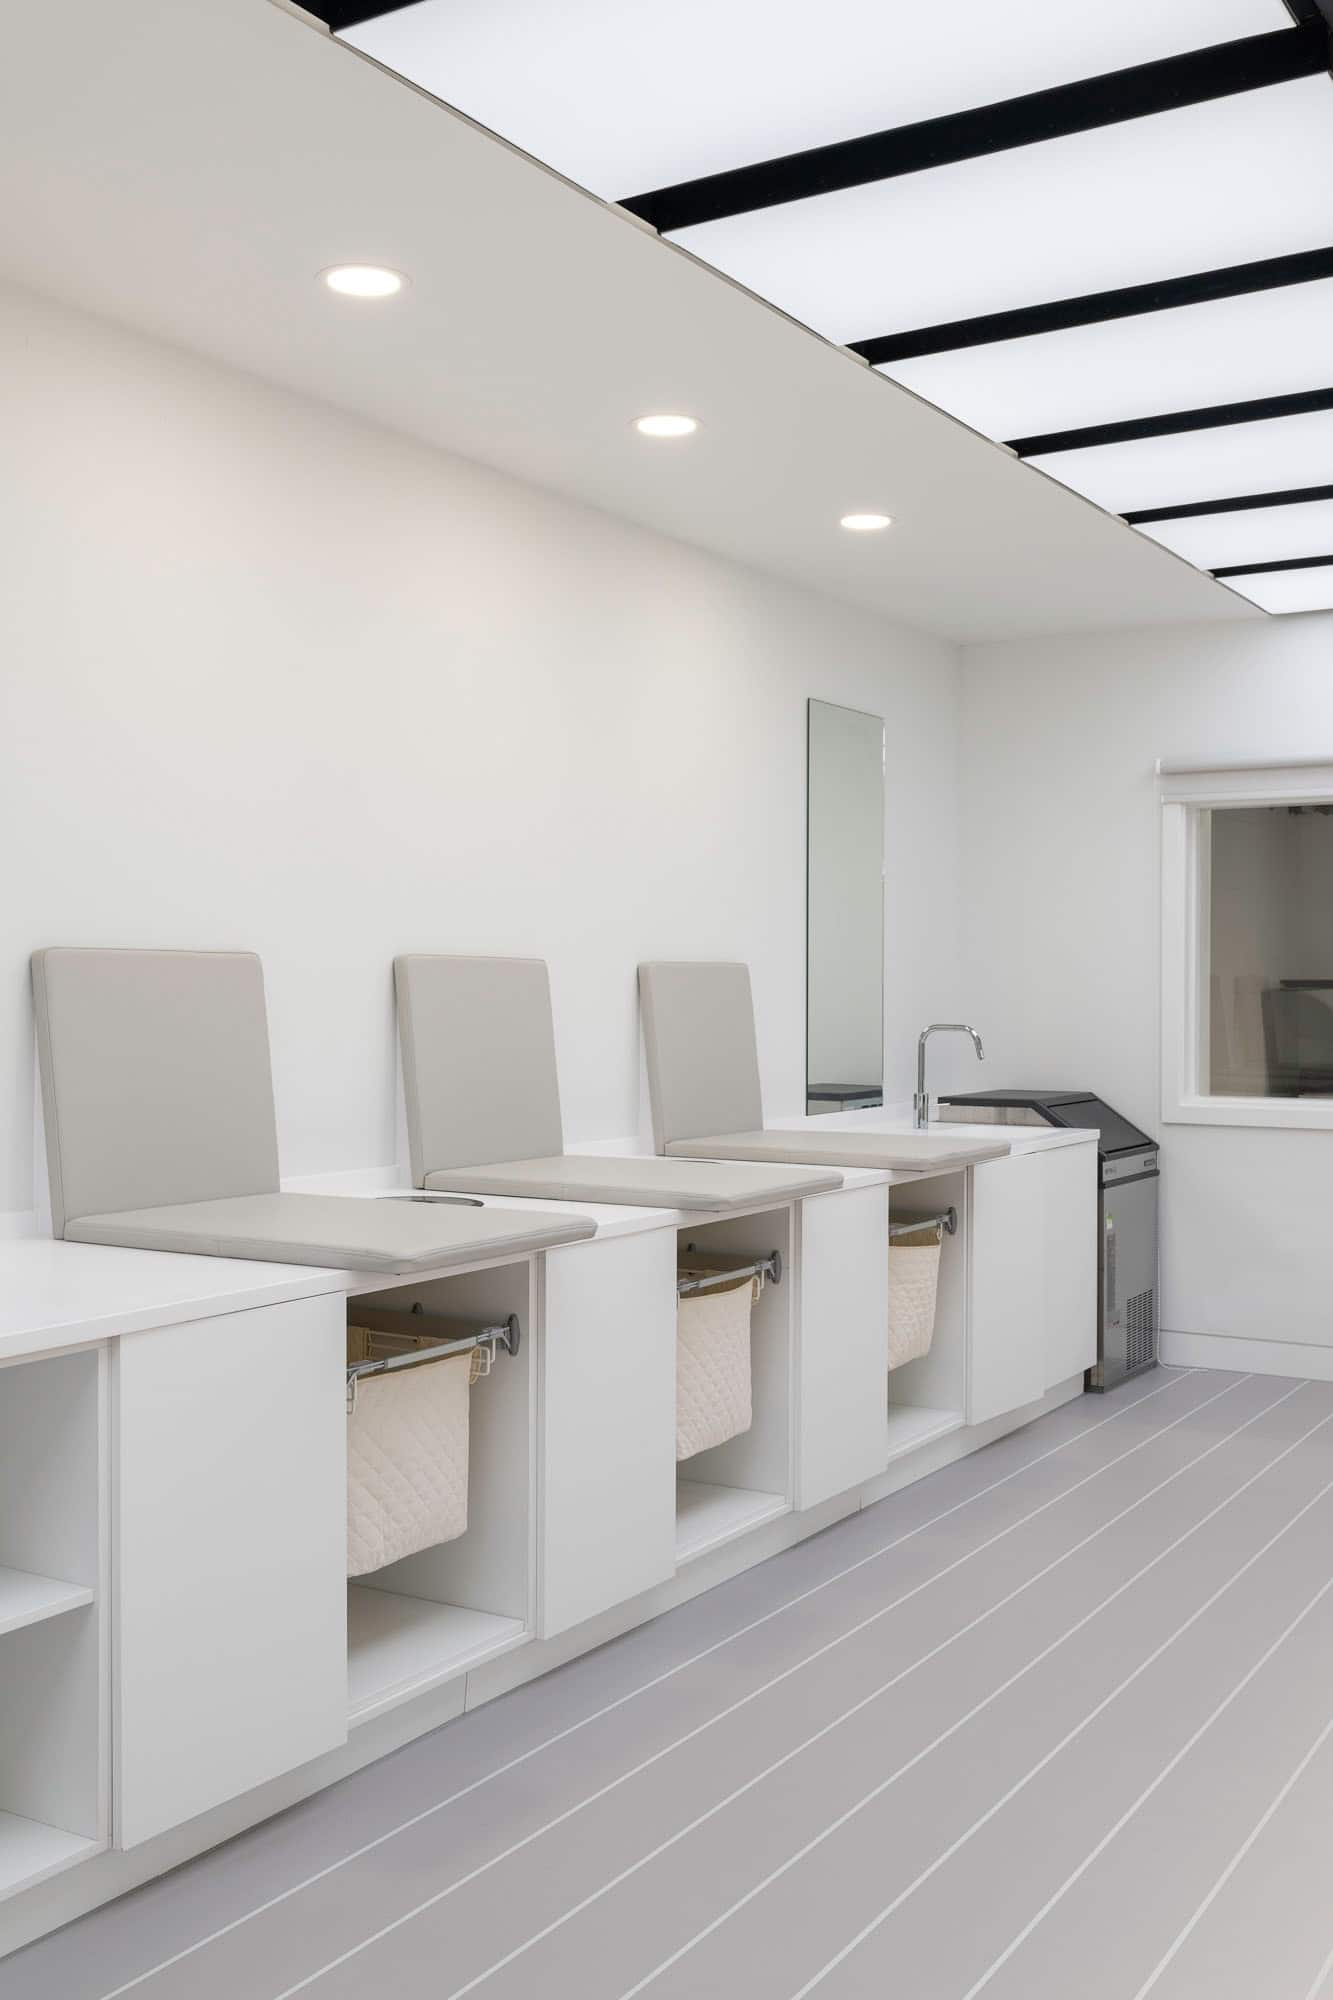 https://wooarchitects.com/wp-content/uploads/2020/07/Wembley-Changing-Rooms-photo-by-Tom-Bird-27-web.jpg